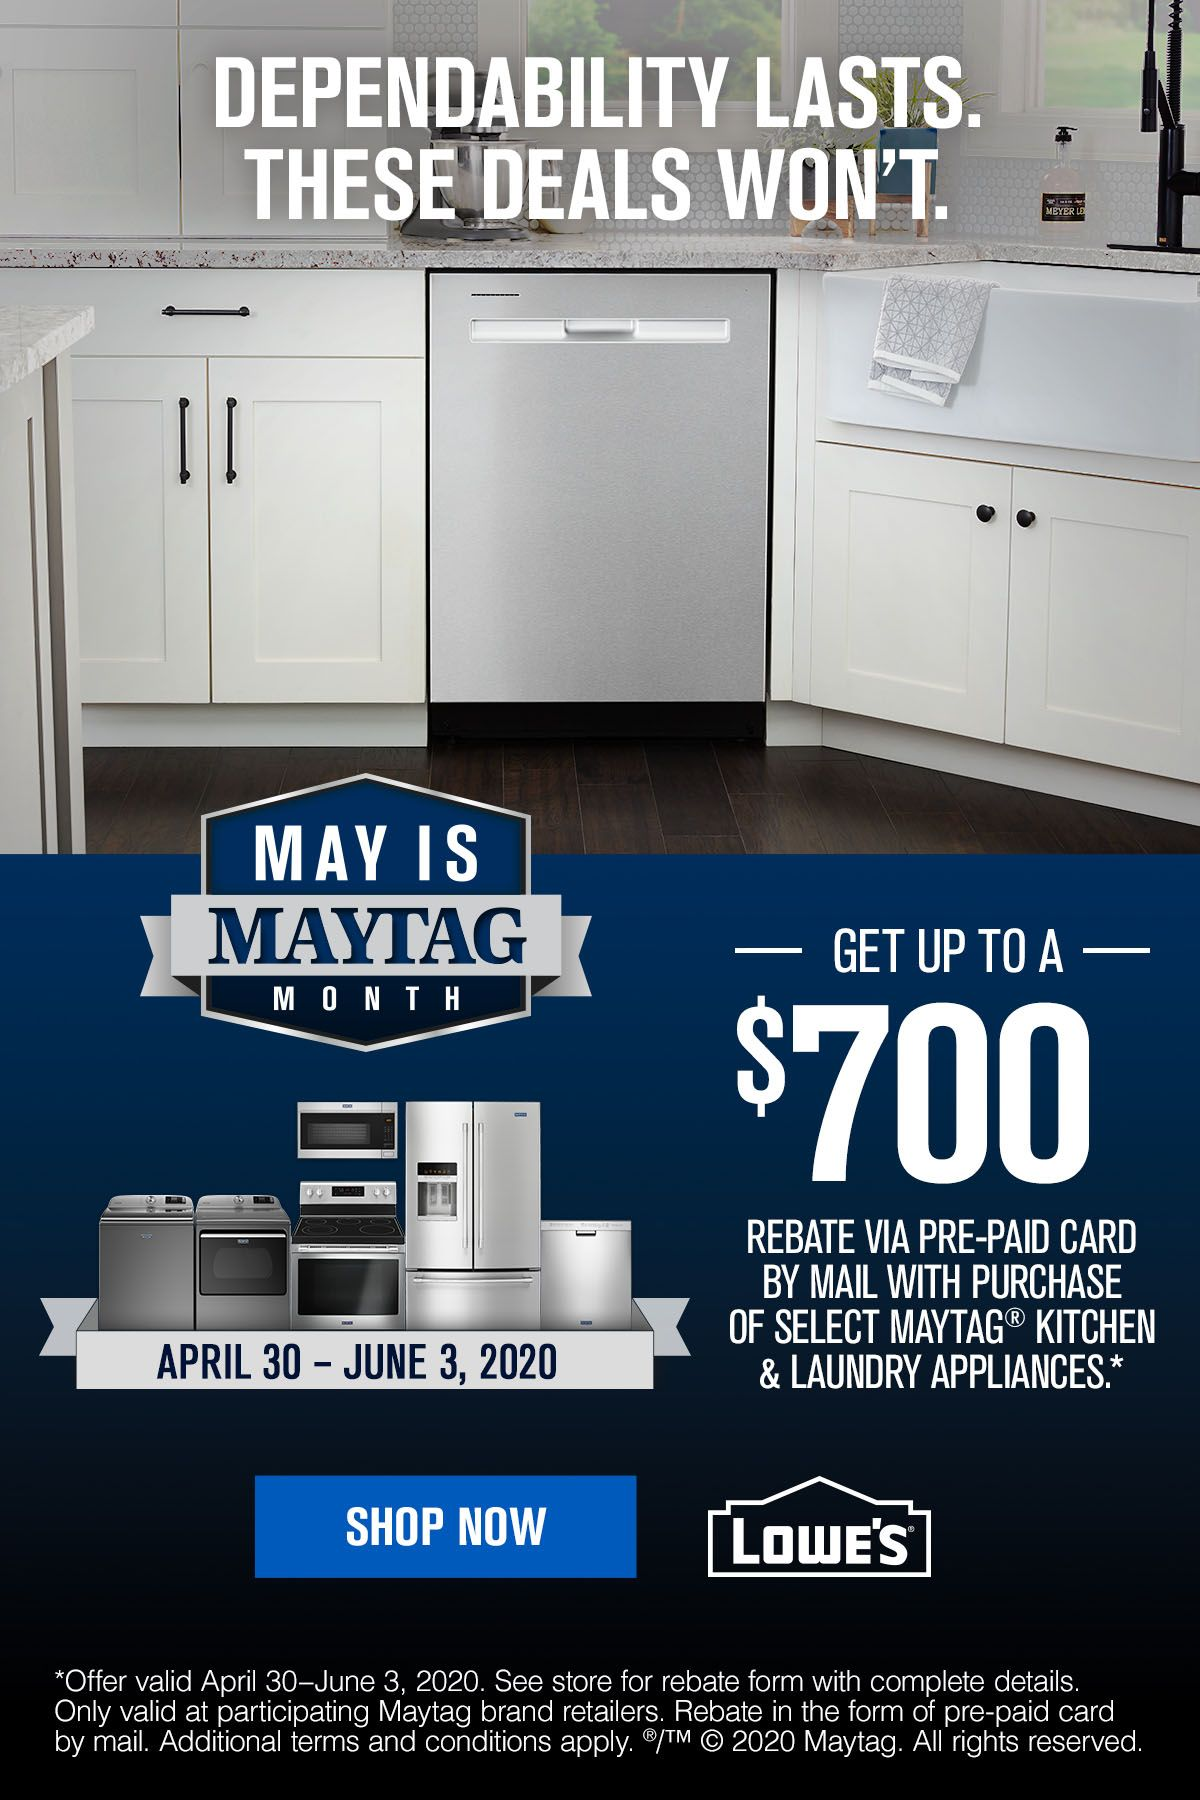 Get Great Deals On Dependable Appliances At Lowe S Bathroom Makeovers On A Budget Maytag Kitchen Interior Design Kitchen